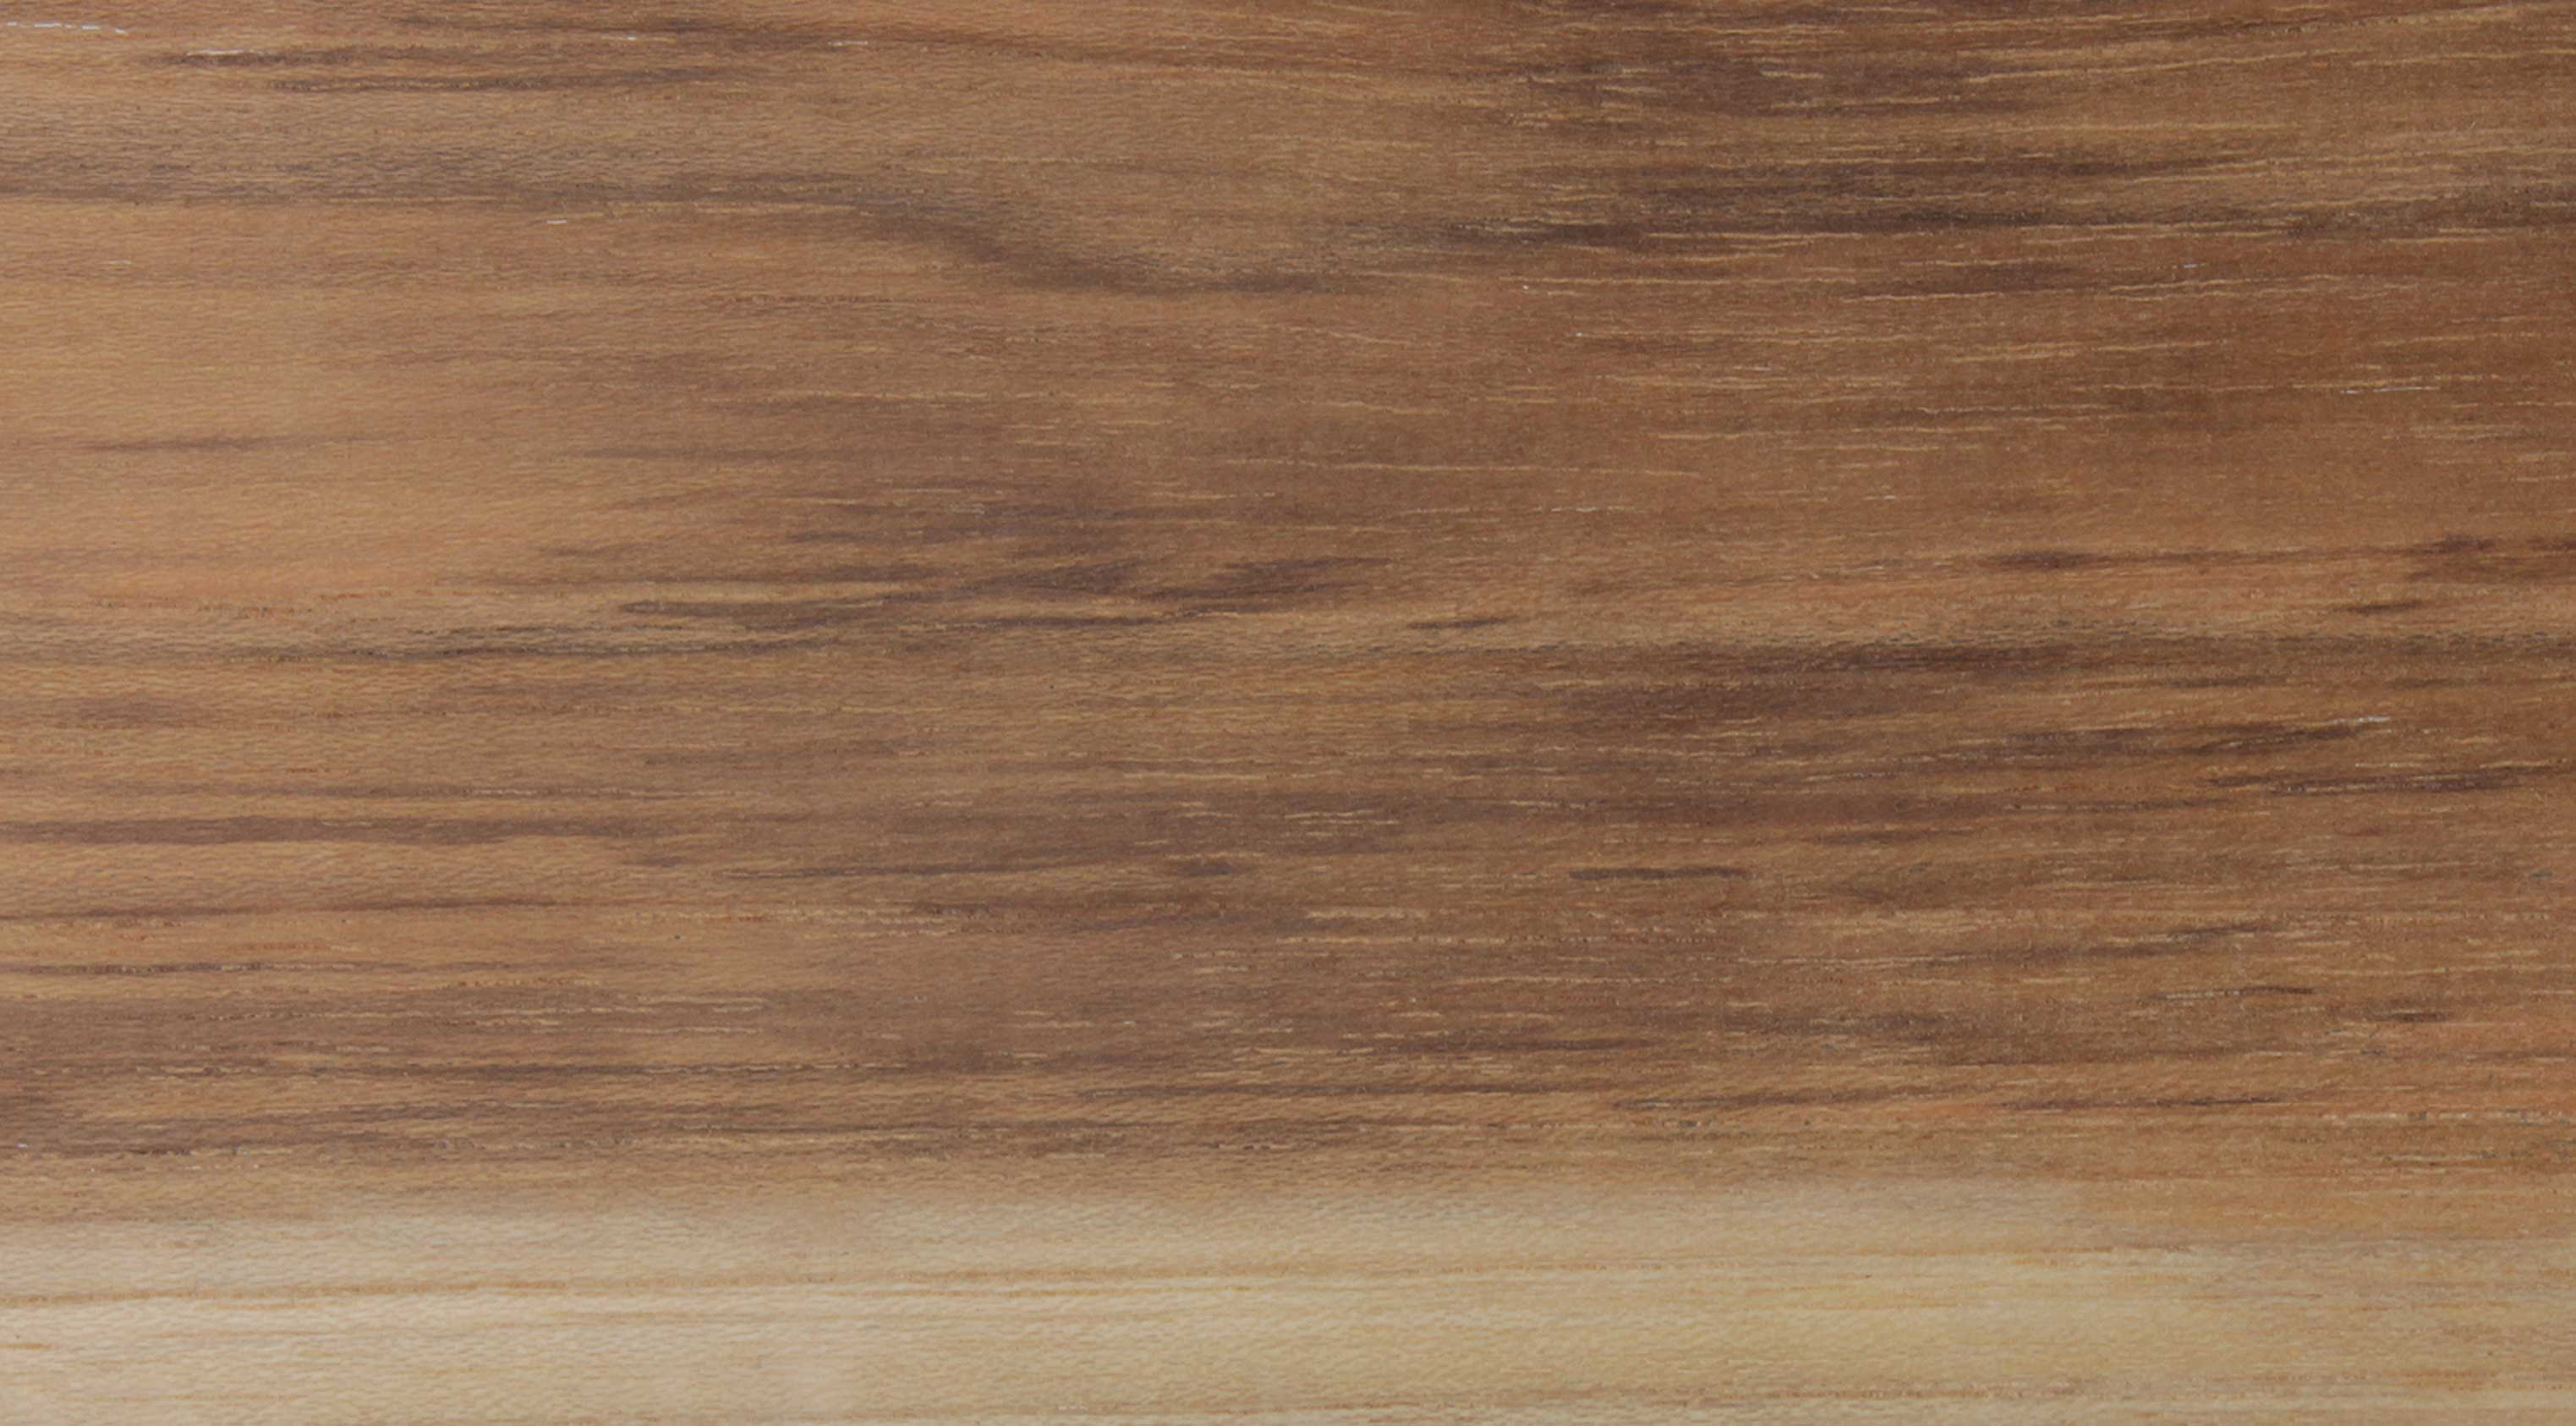 Extremely Durable Flooring : Very durable